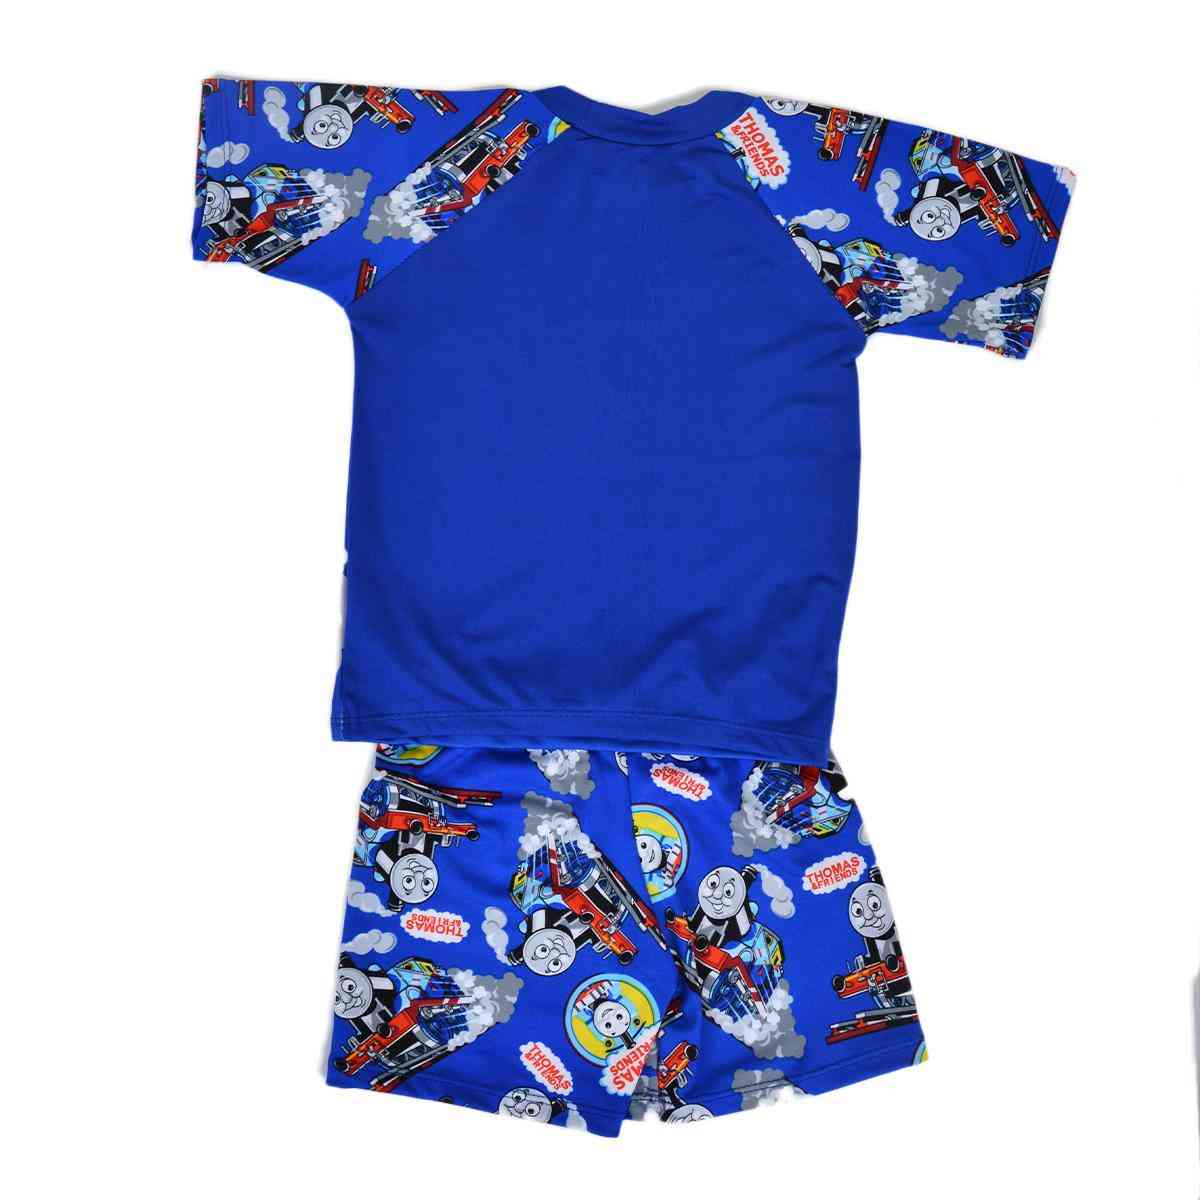 Thomas Train Swimming Suit for Kids - Blue (3 to 4 Years)